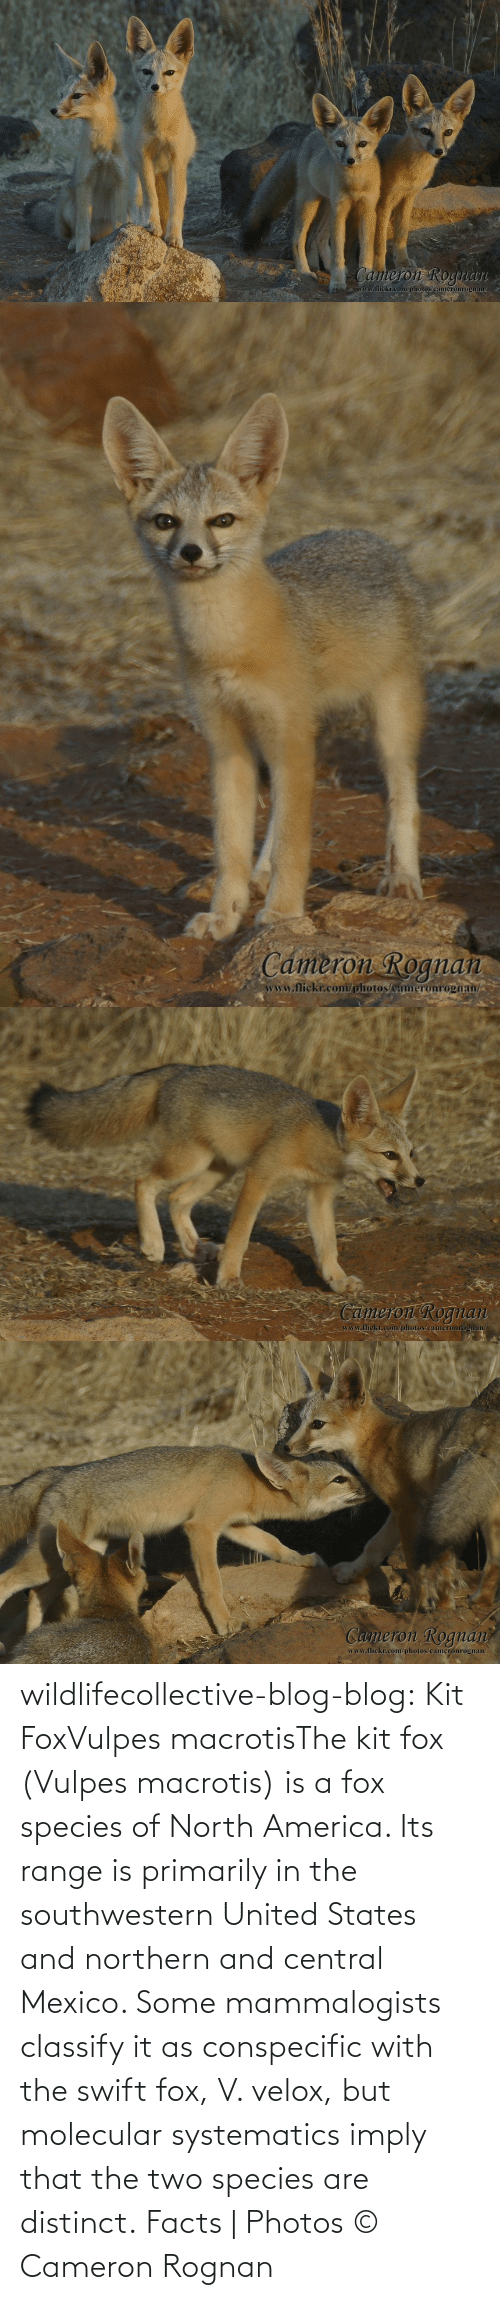 North: wildlifecollective-blog-blog:  Kit FoxVulpes macrotisThe kit fox (Vulpes macrotis) is a fox species of North America. Its range is primarily in the southwestern United States and northern and central Mexico. Some mammalogists classify it as conspecific with the swift fox, V. velox, but molecular systematics imply that the two species are distinct. Facts | Photos © Cameron Rognan